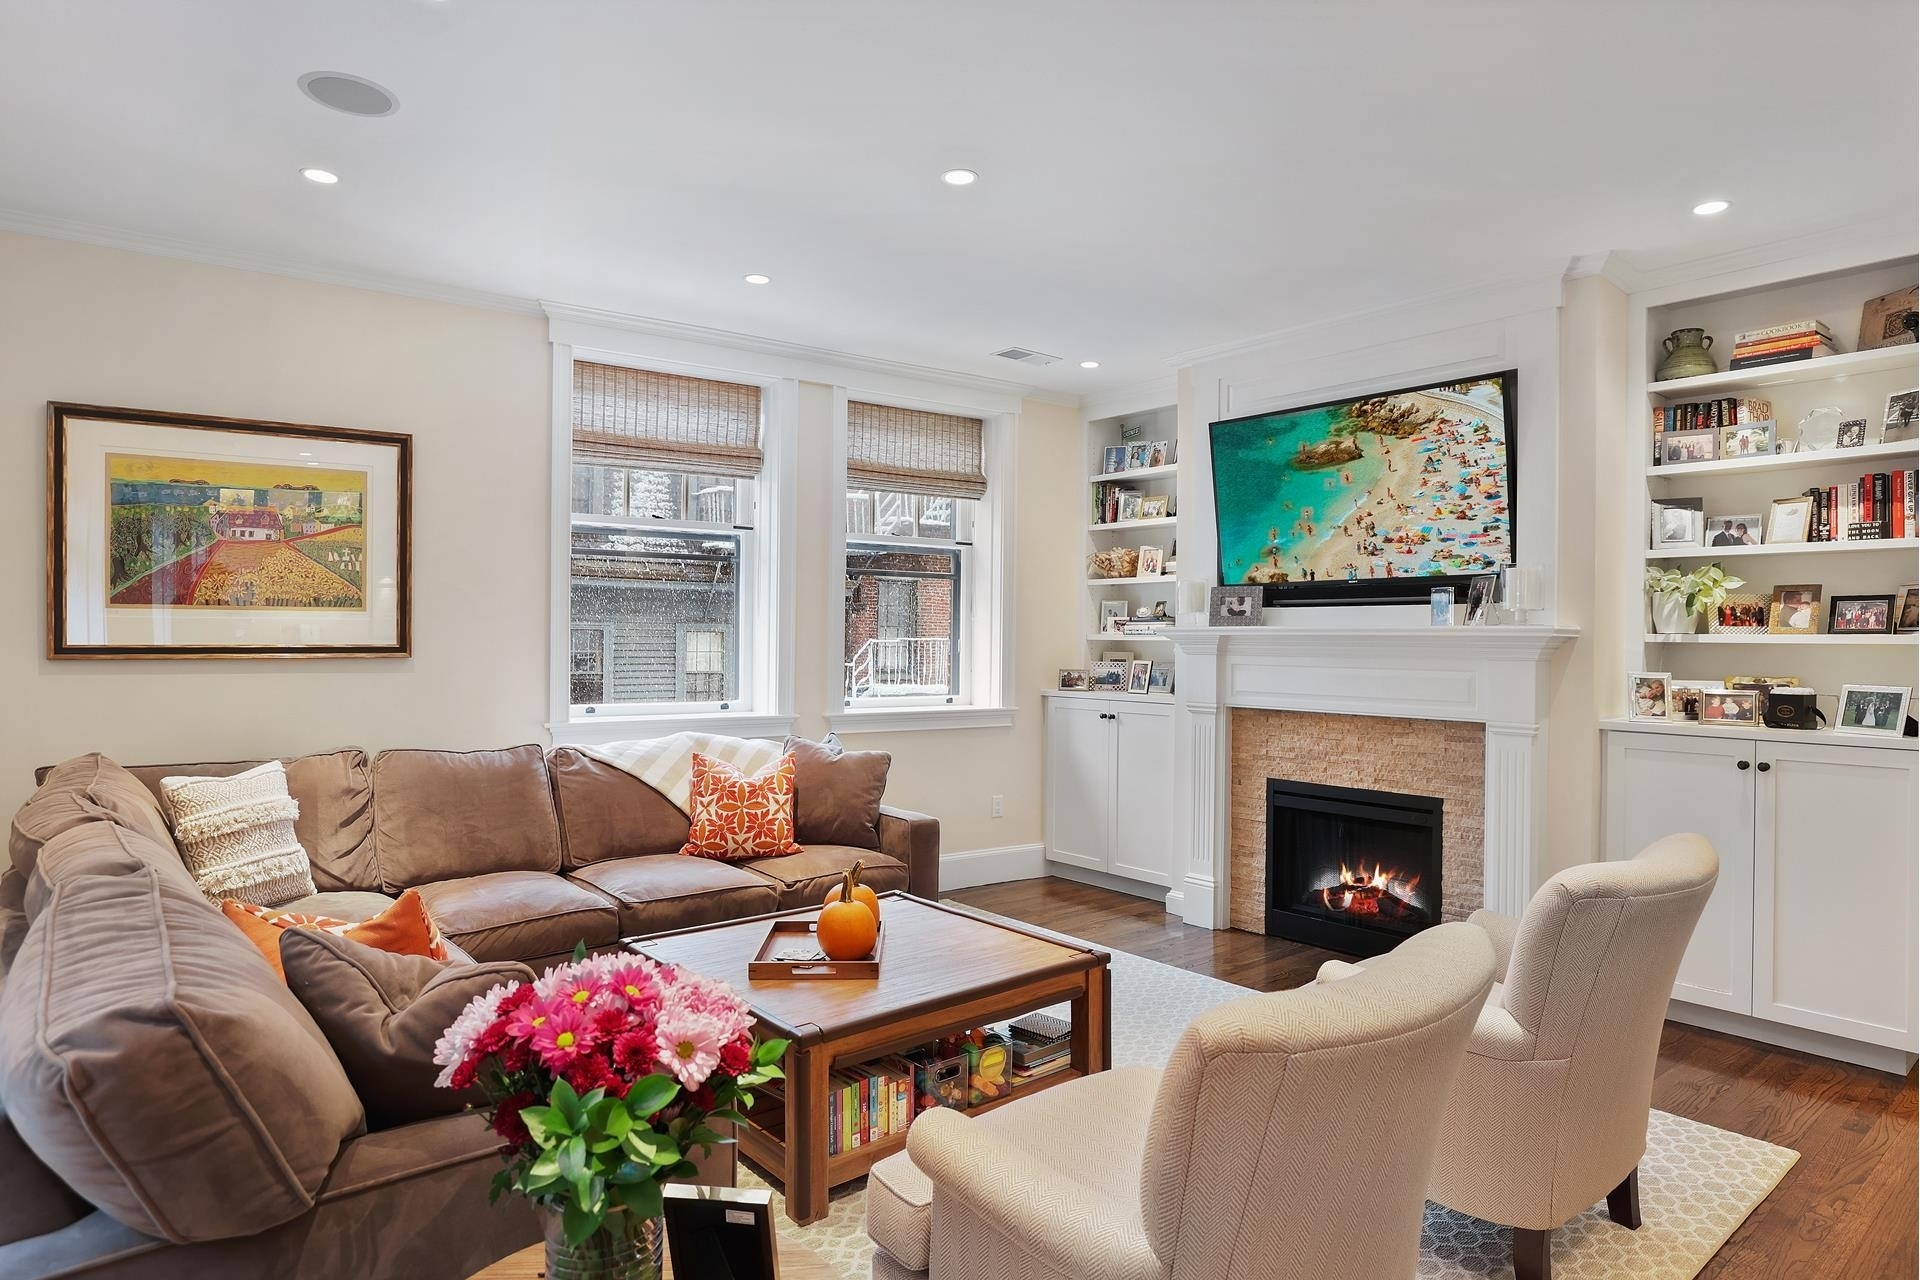 Condominium for Sale at 82 Chestnut St , 20 Flat of the Hill, Boston, MA 02108